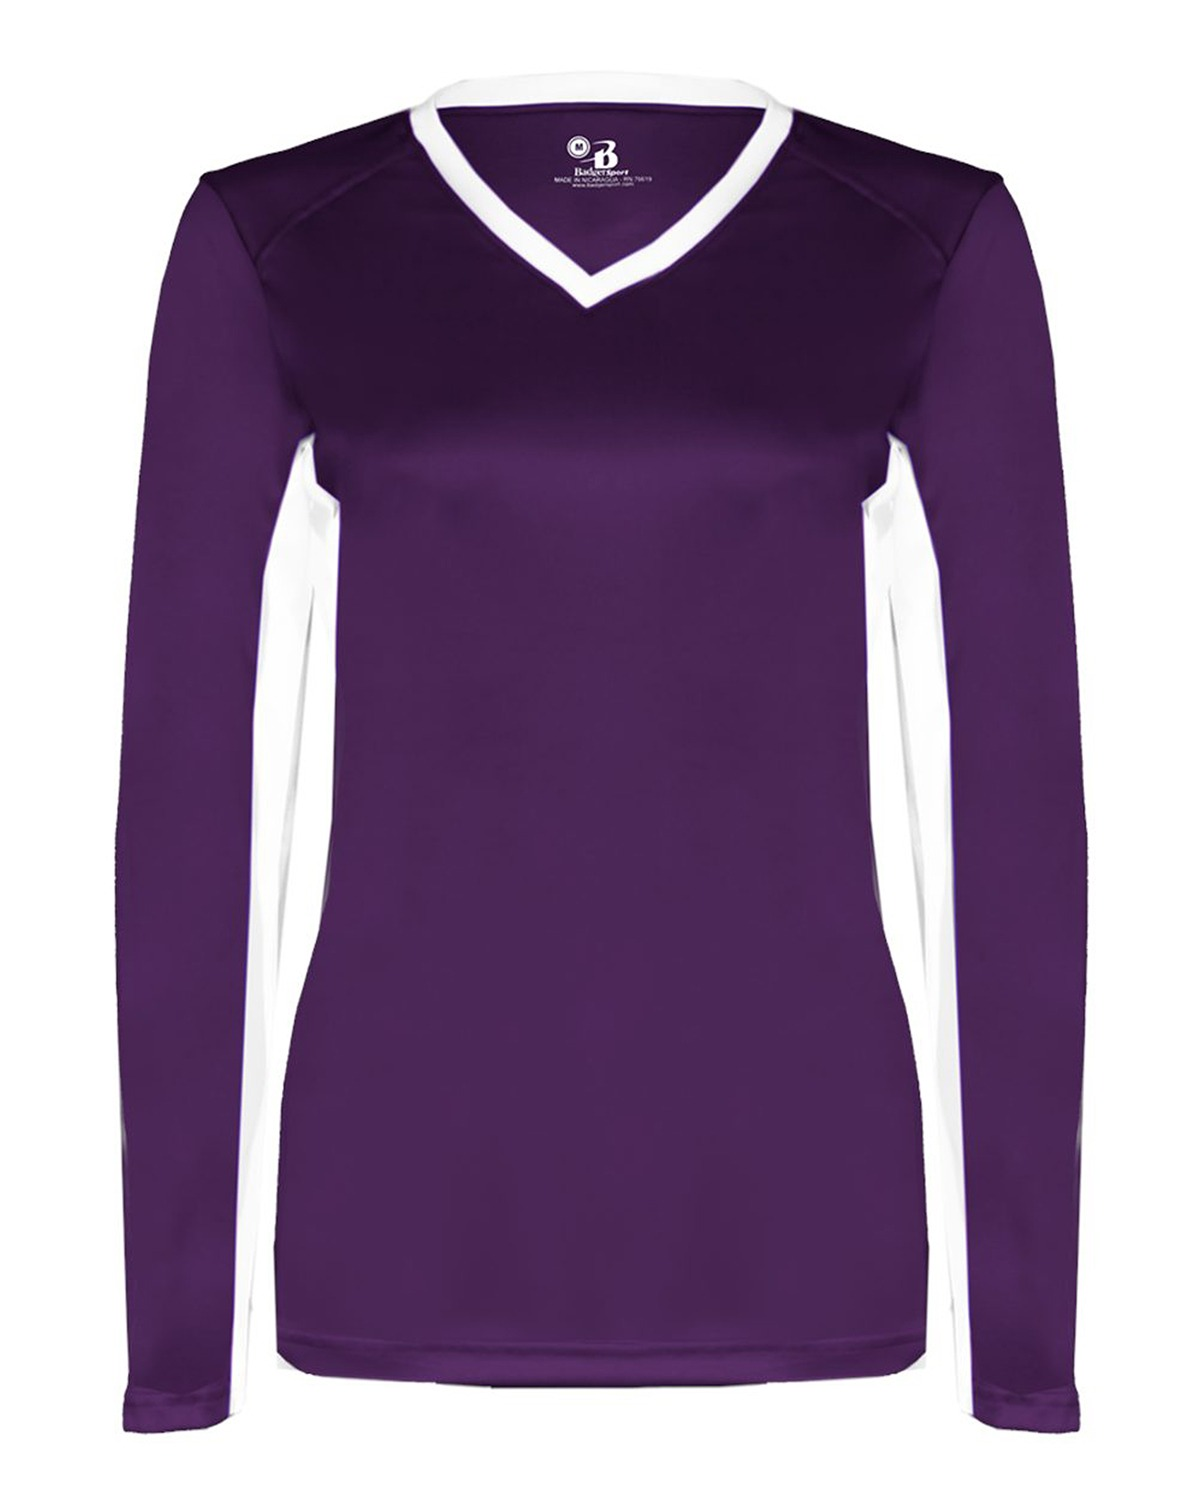 Badger 6164 – Ladies' Core Performance Dig Long-Sleeve Tee with Contrast Sleeve Panels 1